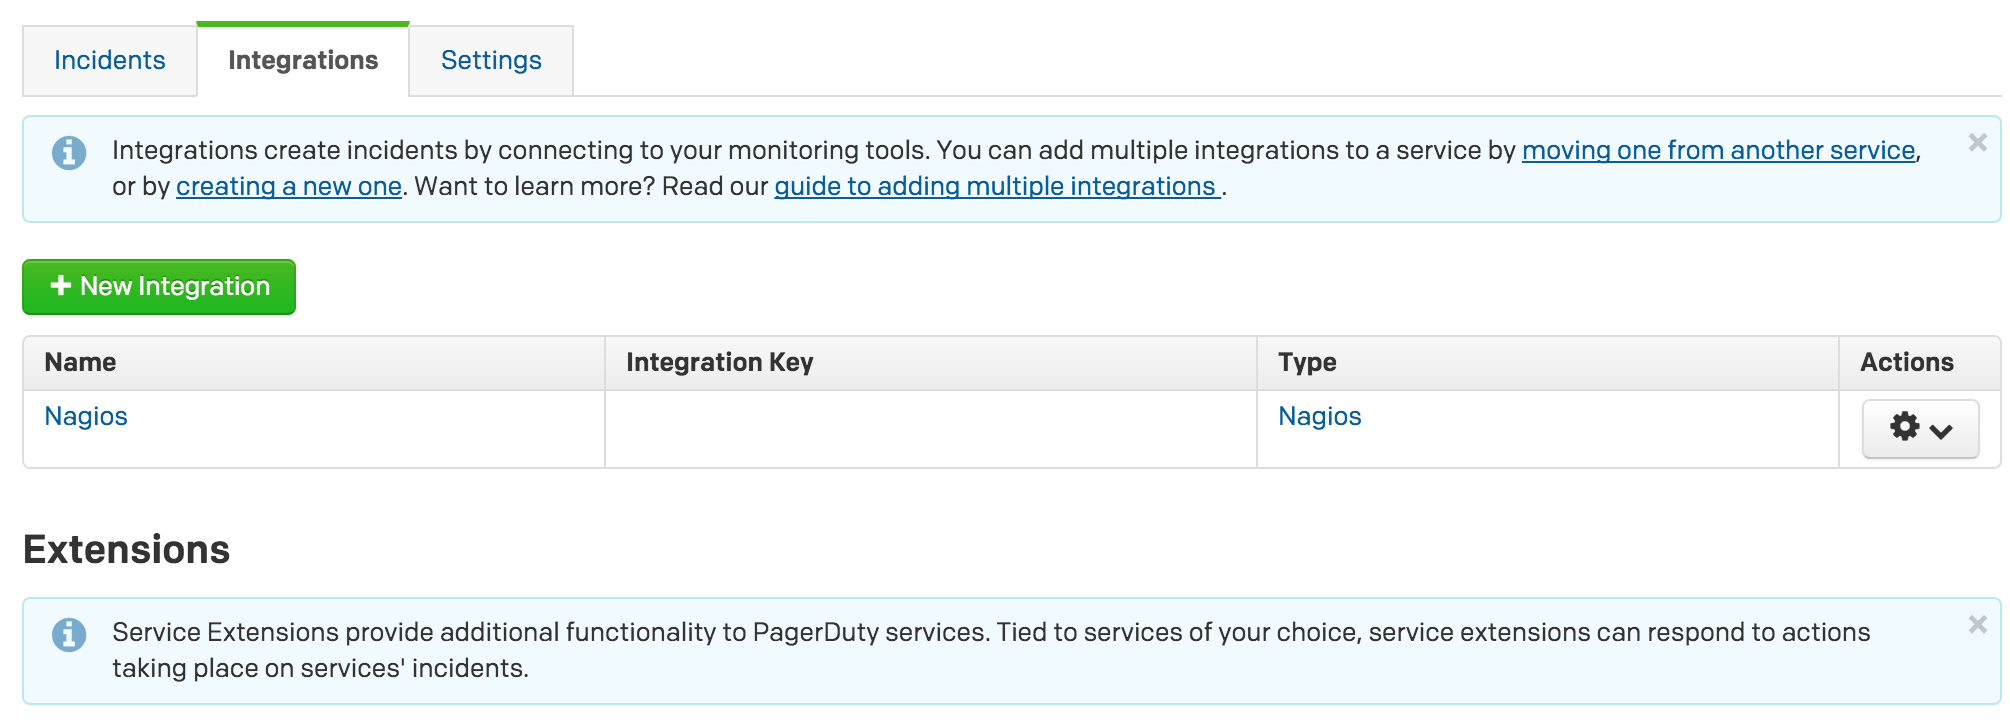 Integrate Nagios with PagerDuty